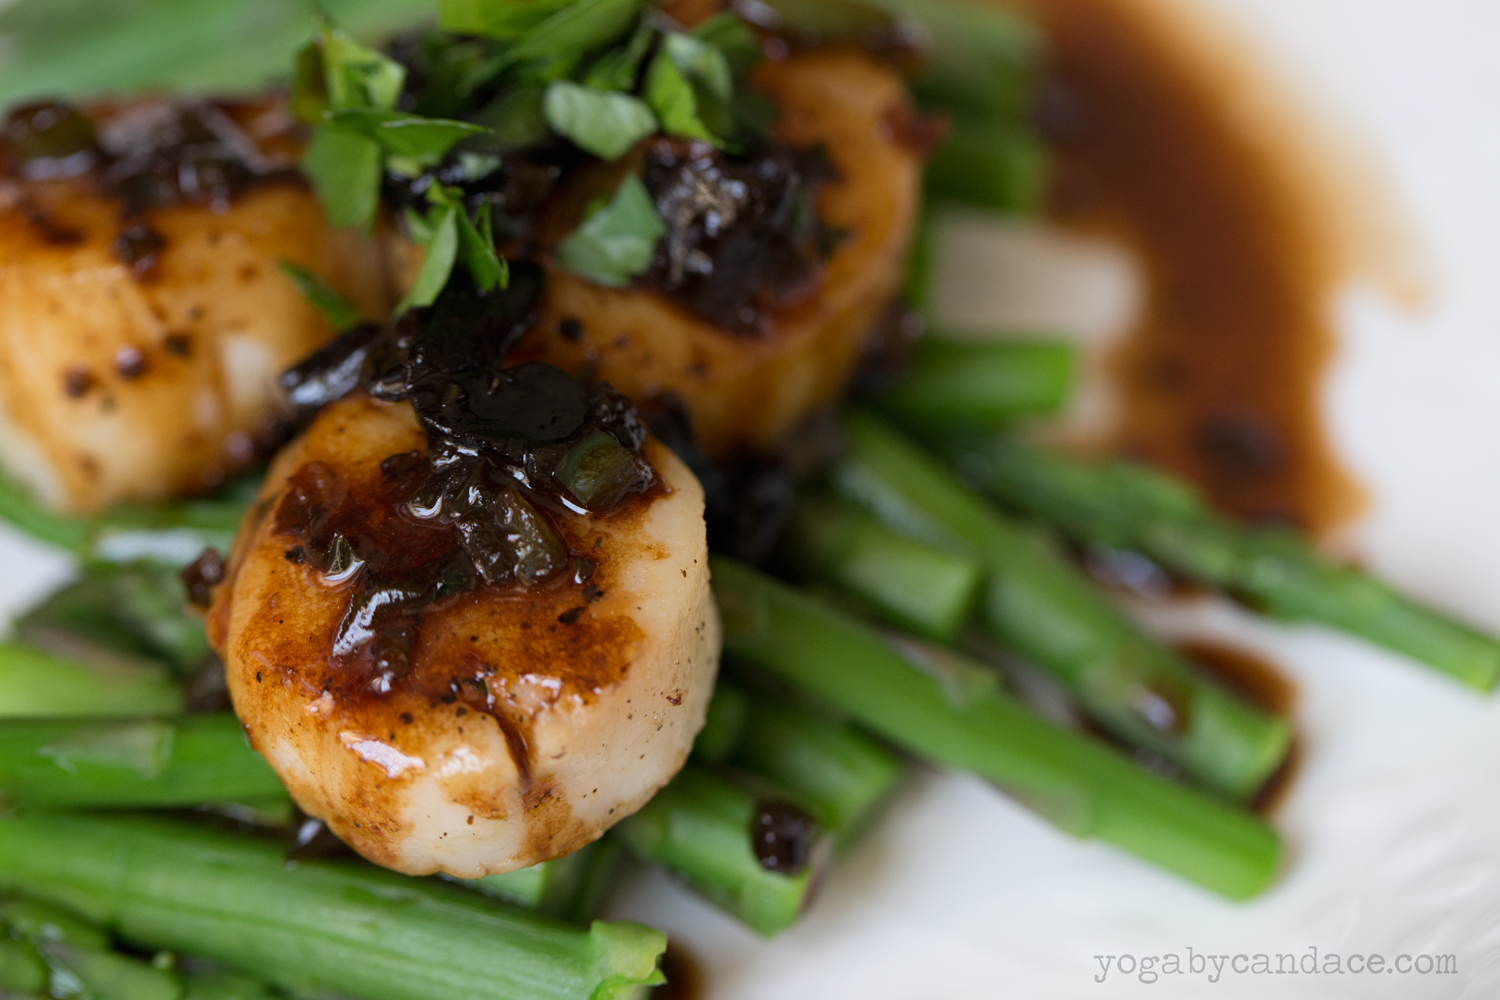 Scallop and asparagus with black garlic jus